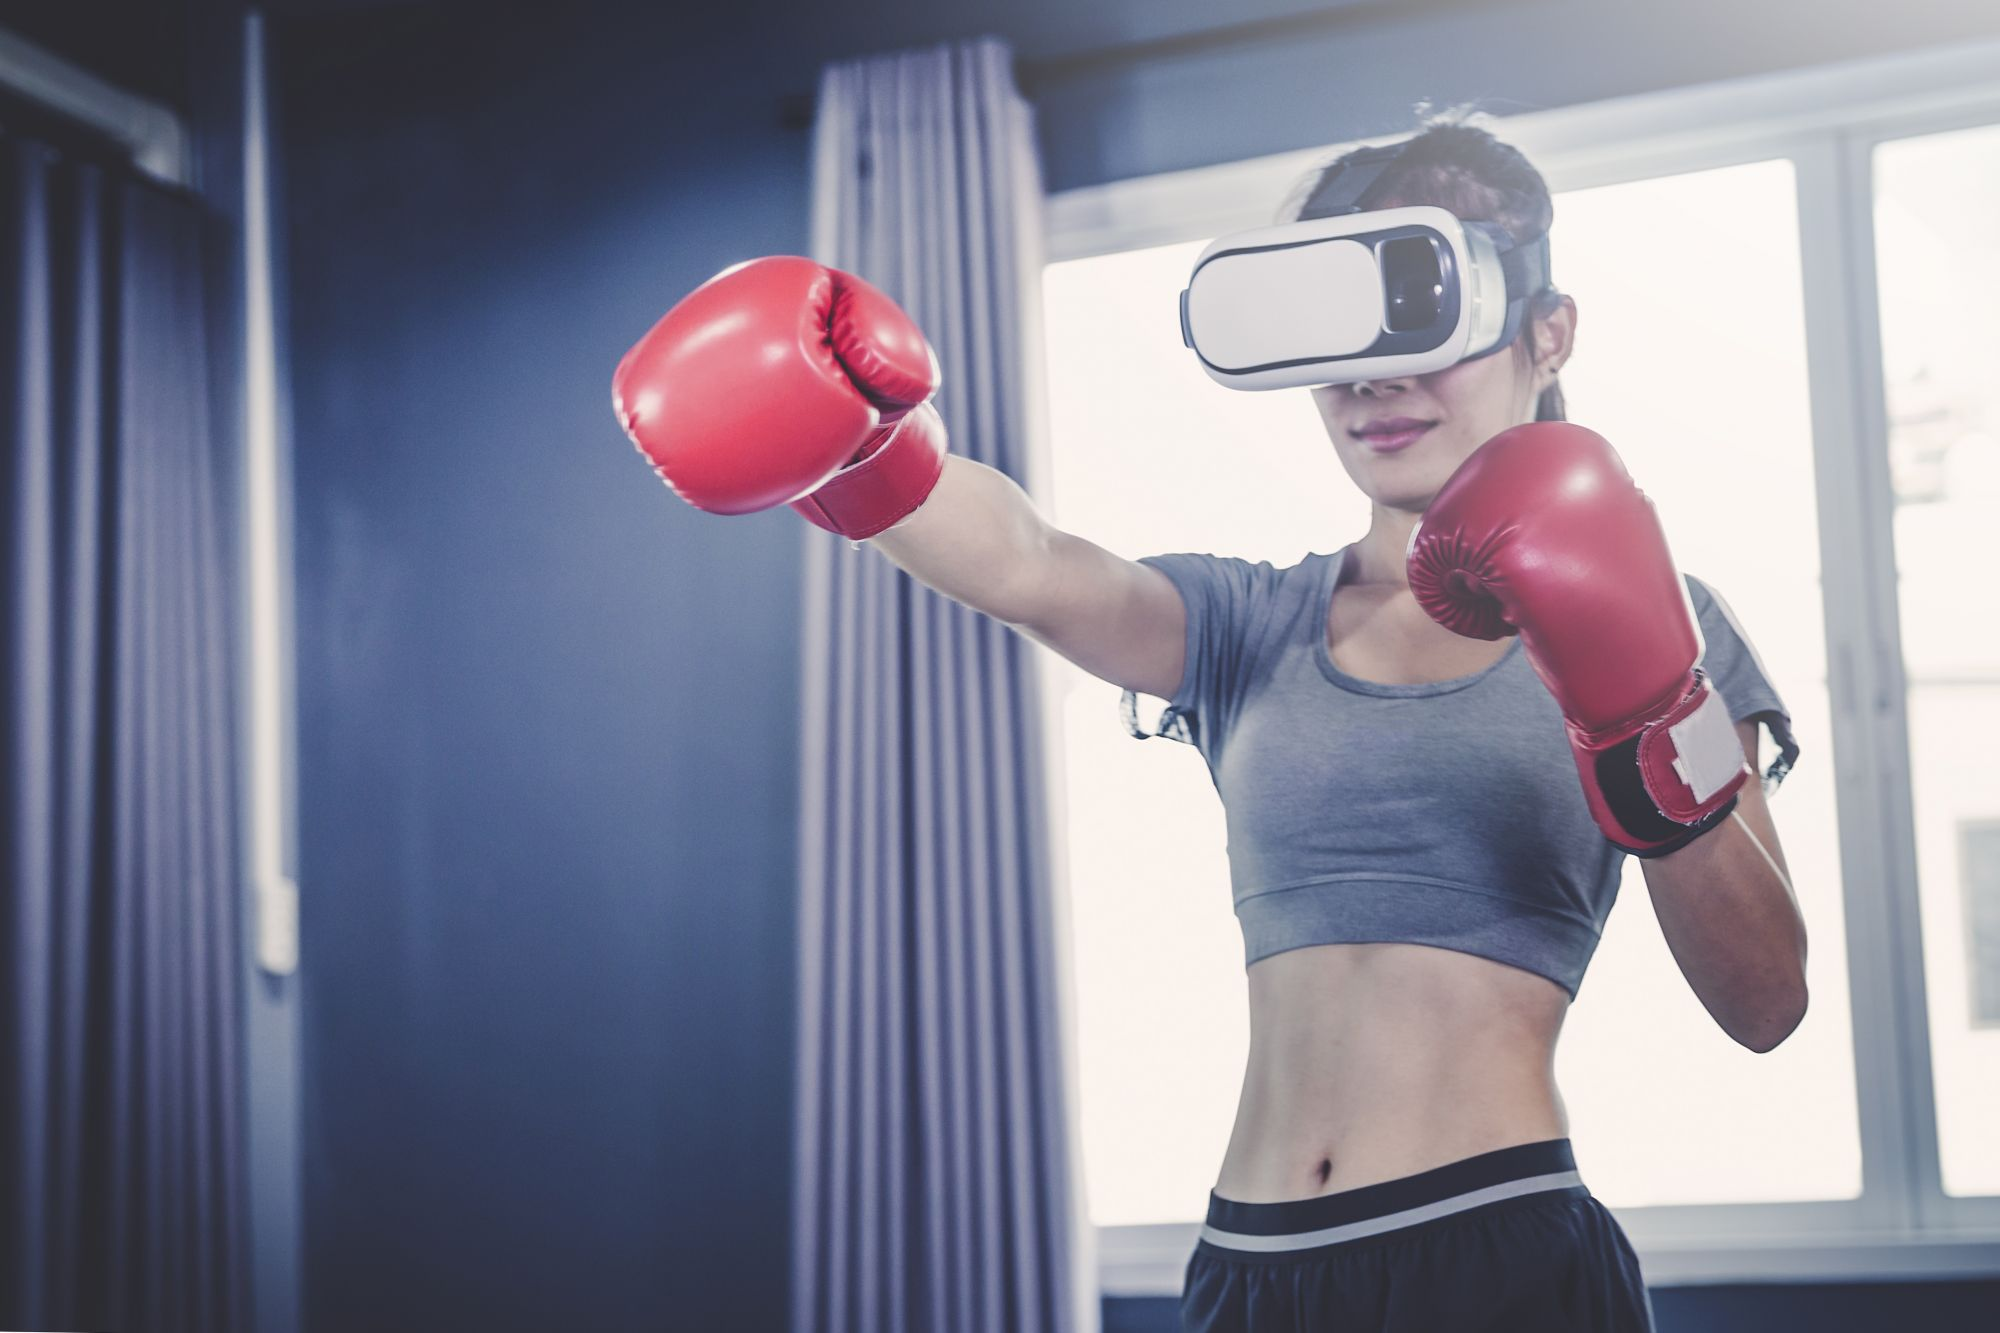 7 Fitness Video Games For Fun Home Workout